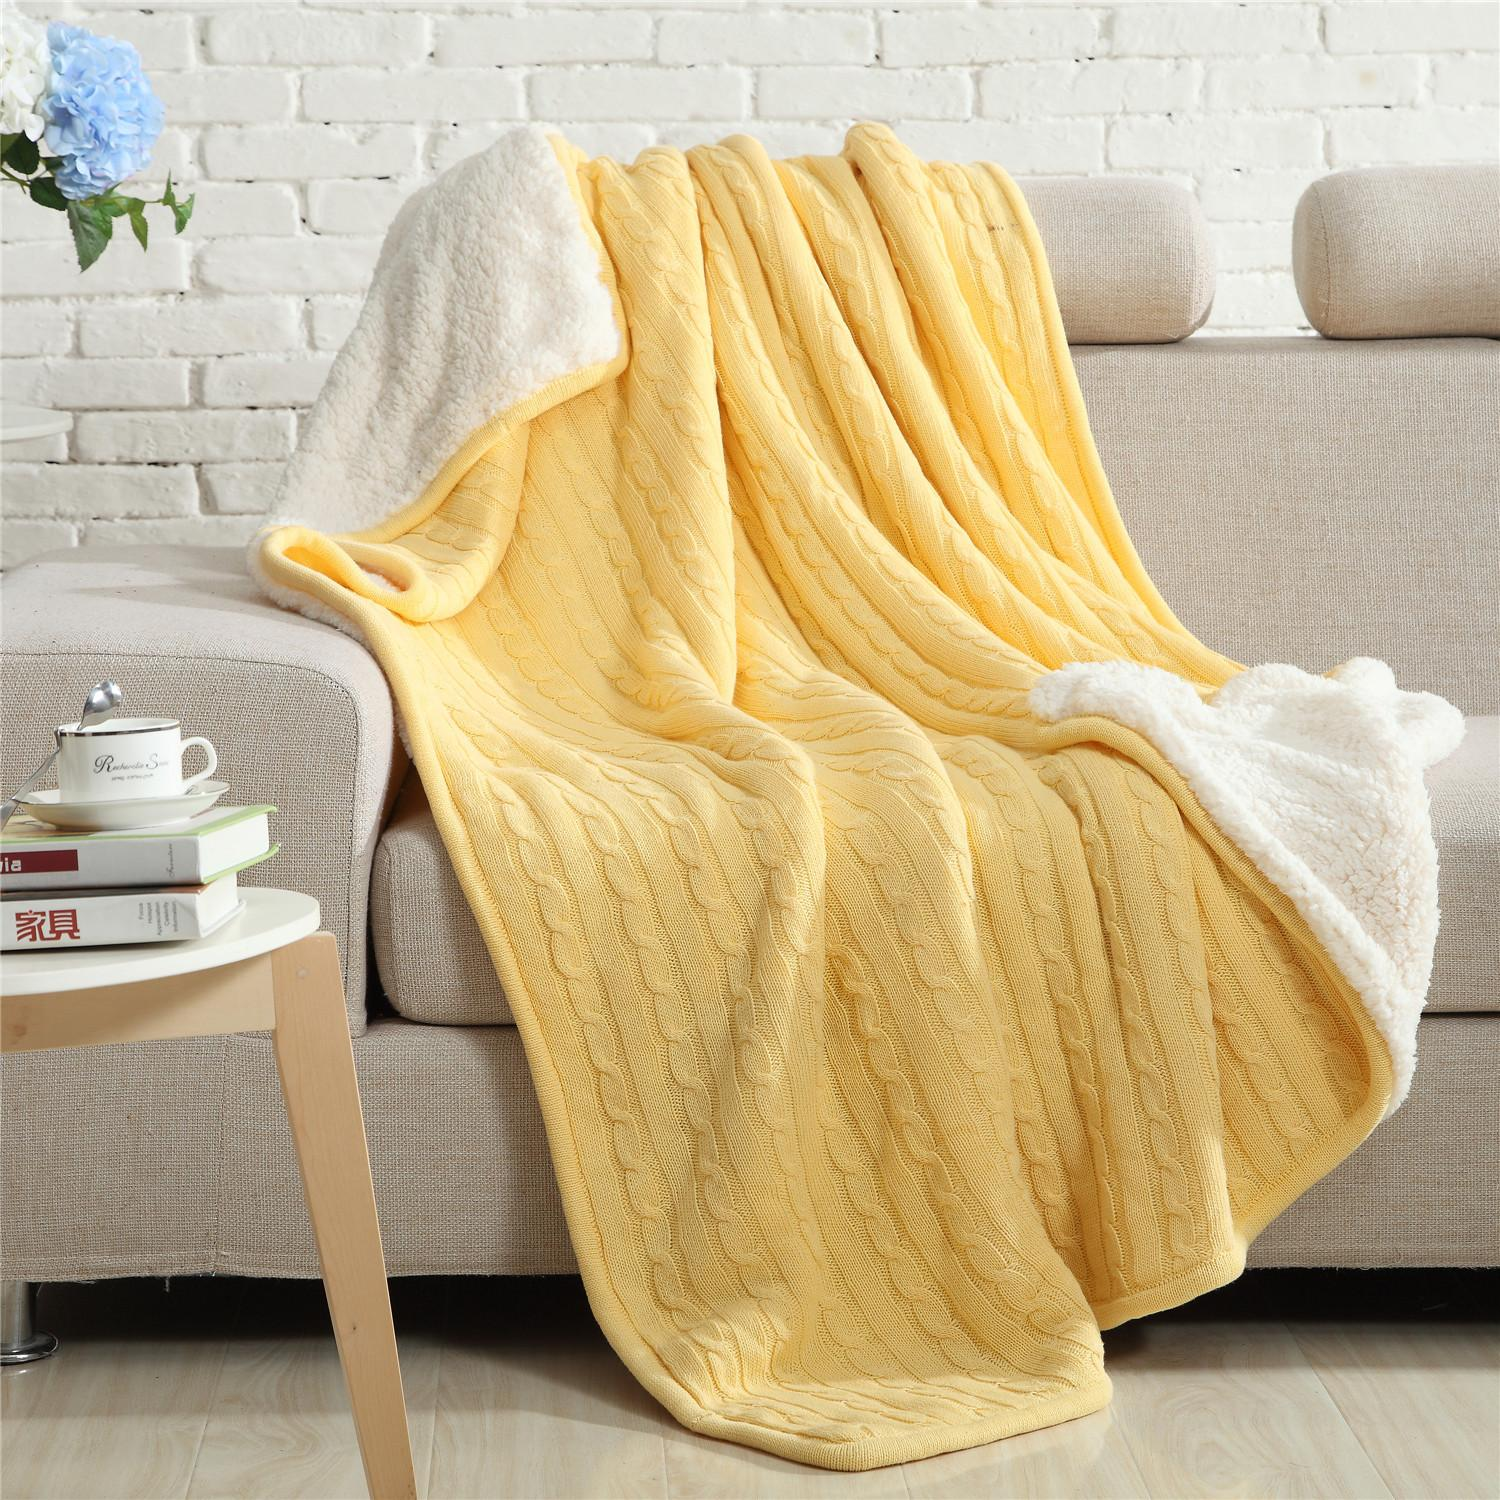 High Quality Luxury Overall Knit Blanket Coverlet Cotton Velvet